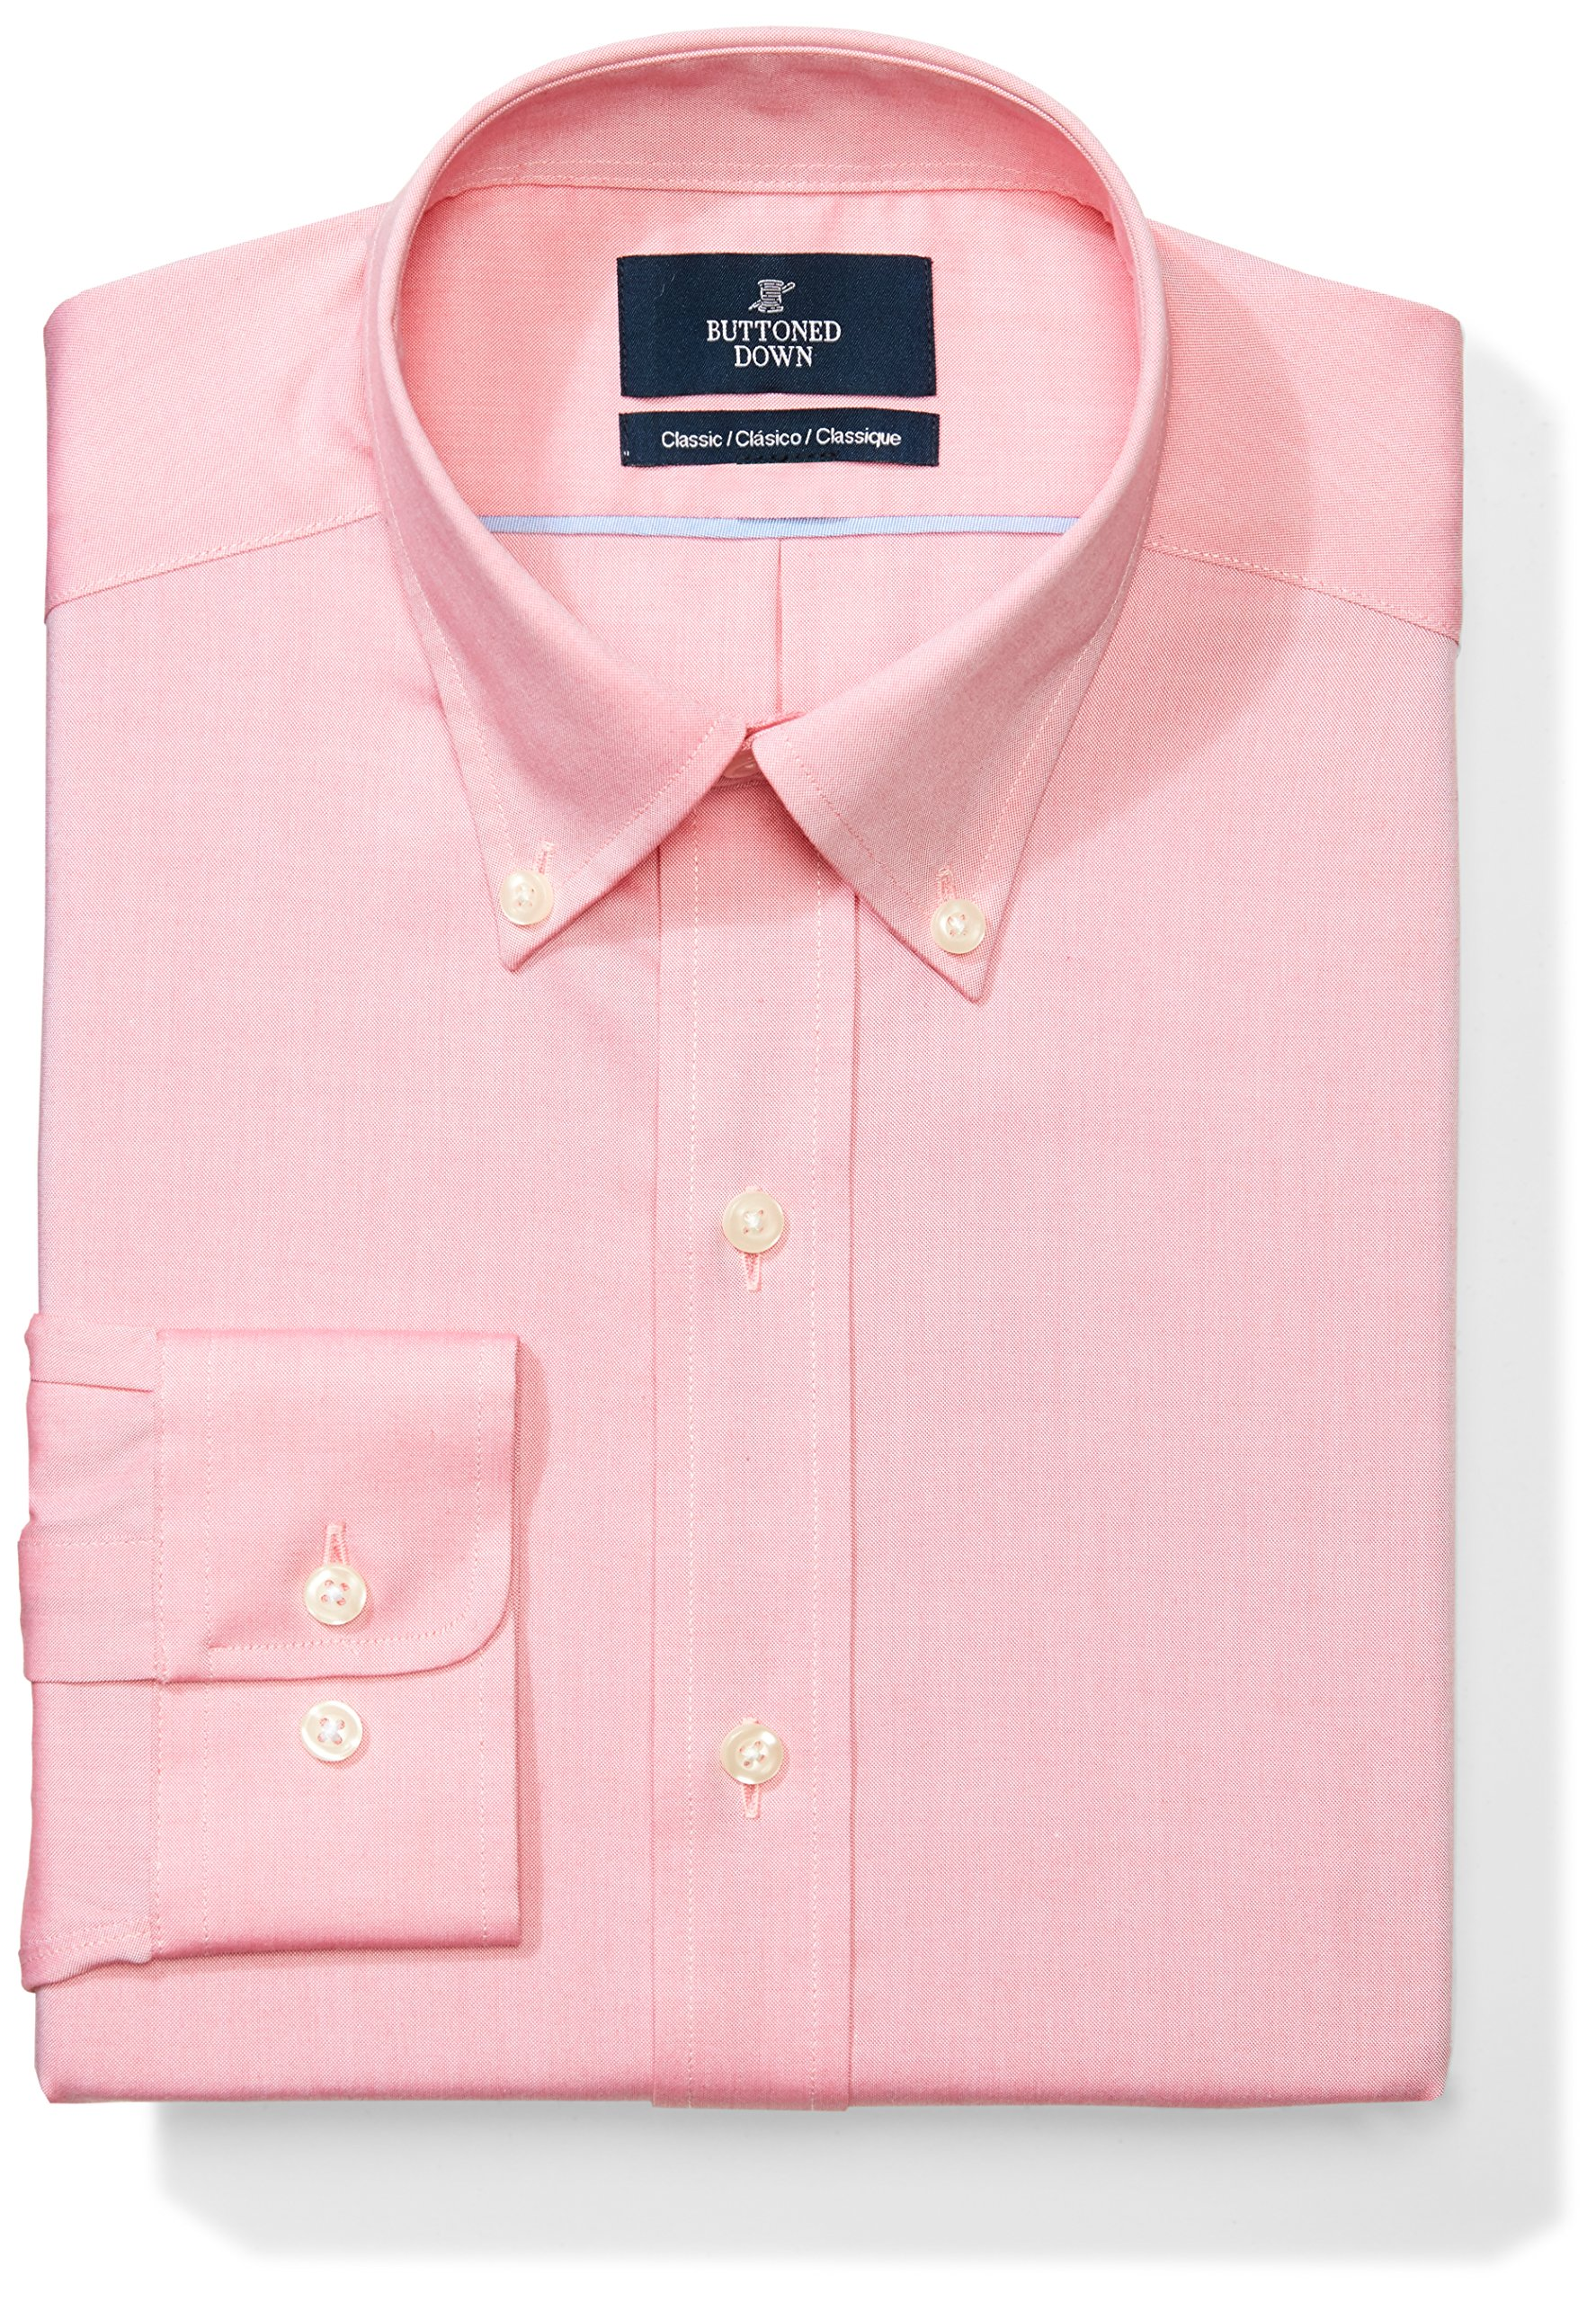 Buttoned Down Men's Classic Fit Button-Collar Solid Non-Iron Dress Shirt (No Pocket), Pink, 15.5'' Neck 32'' Sleeve by Buttoned Down